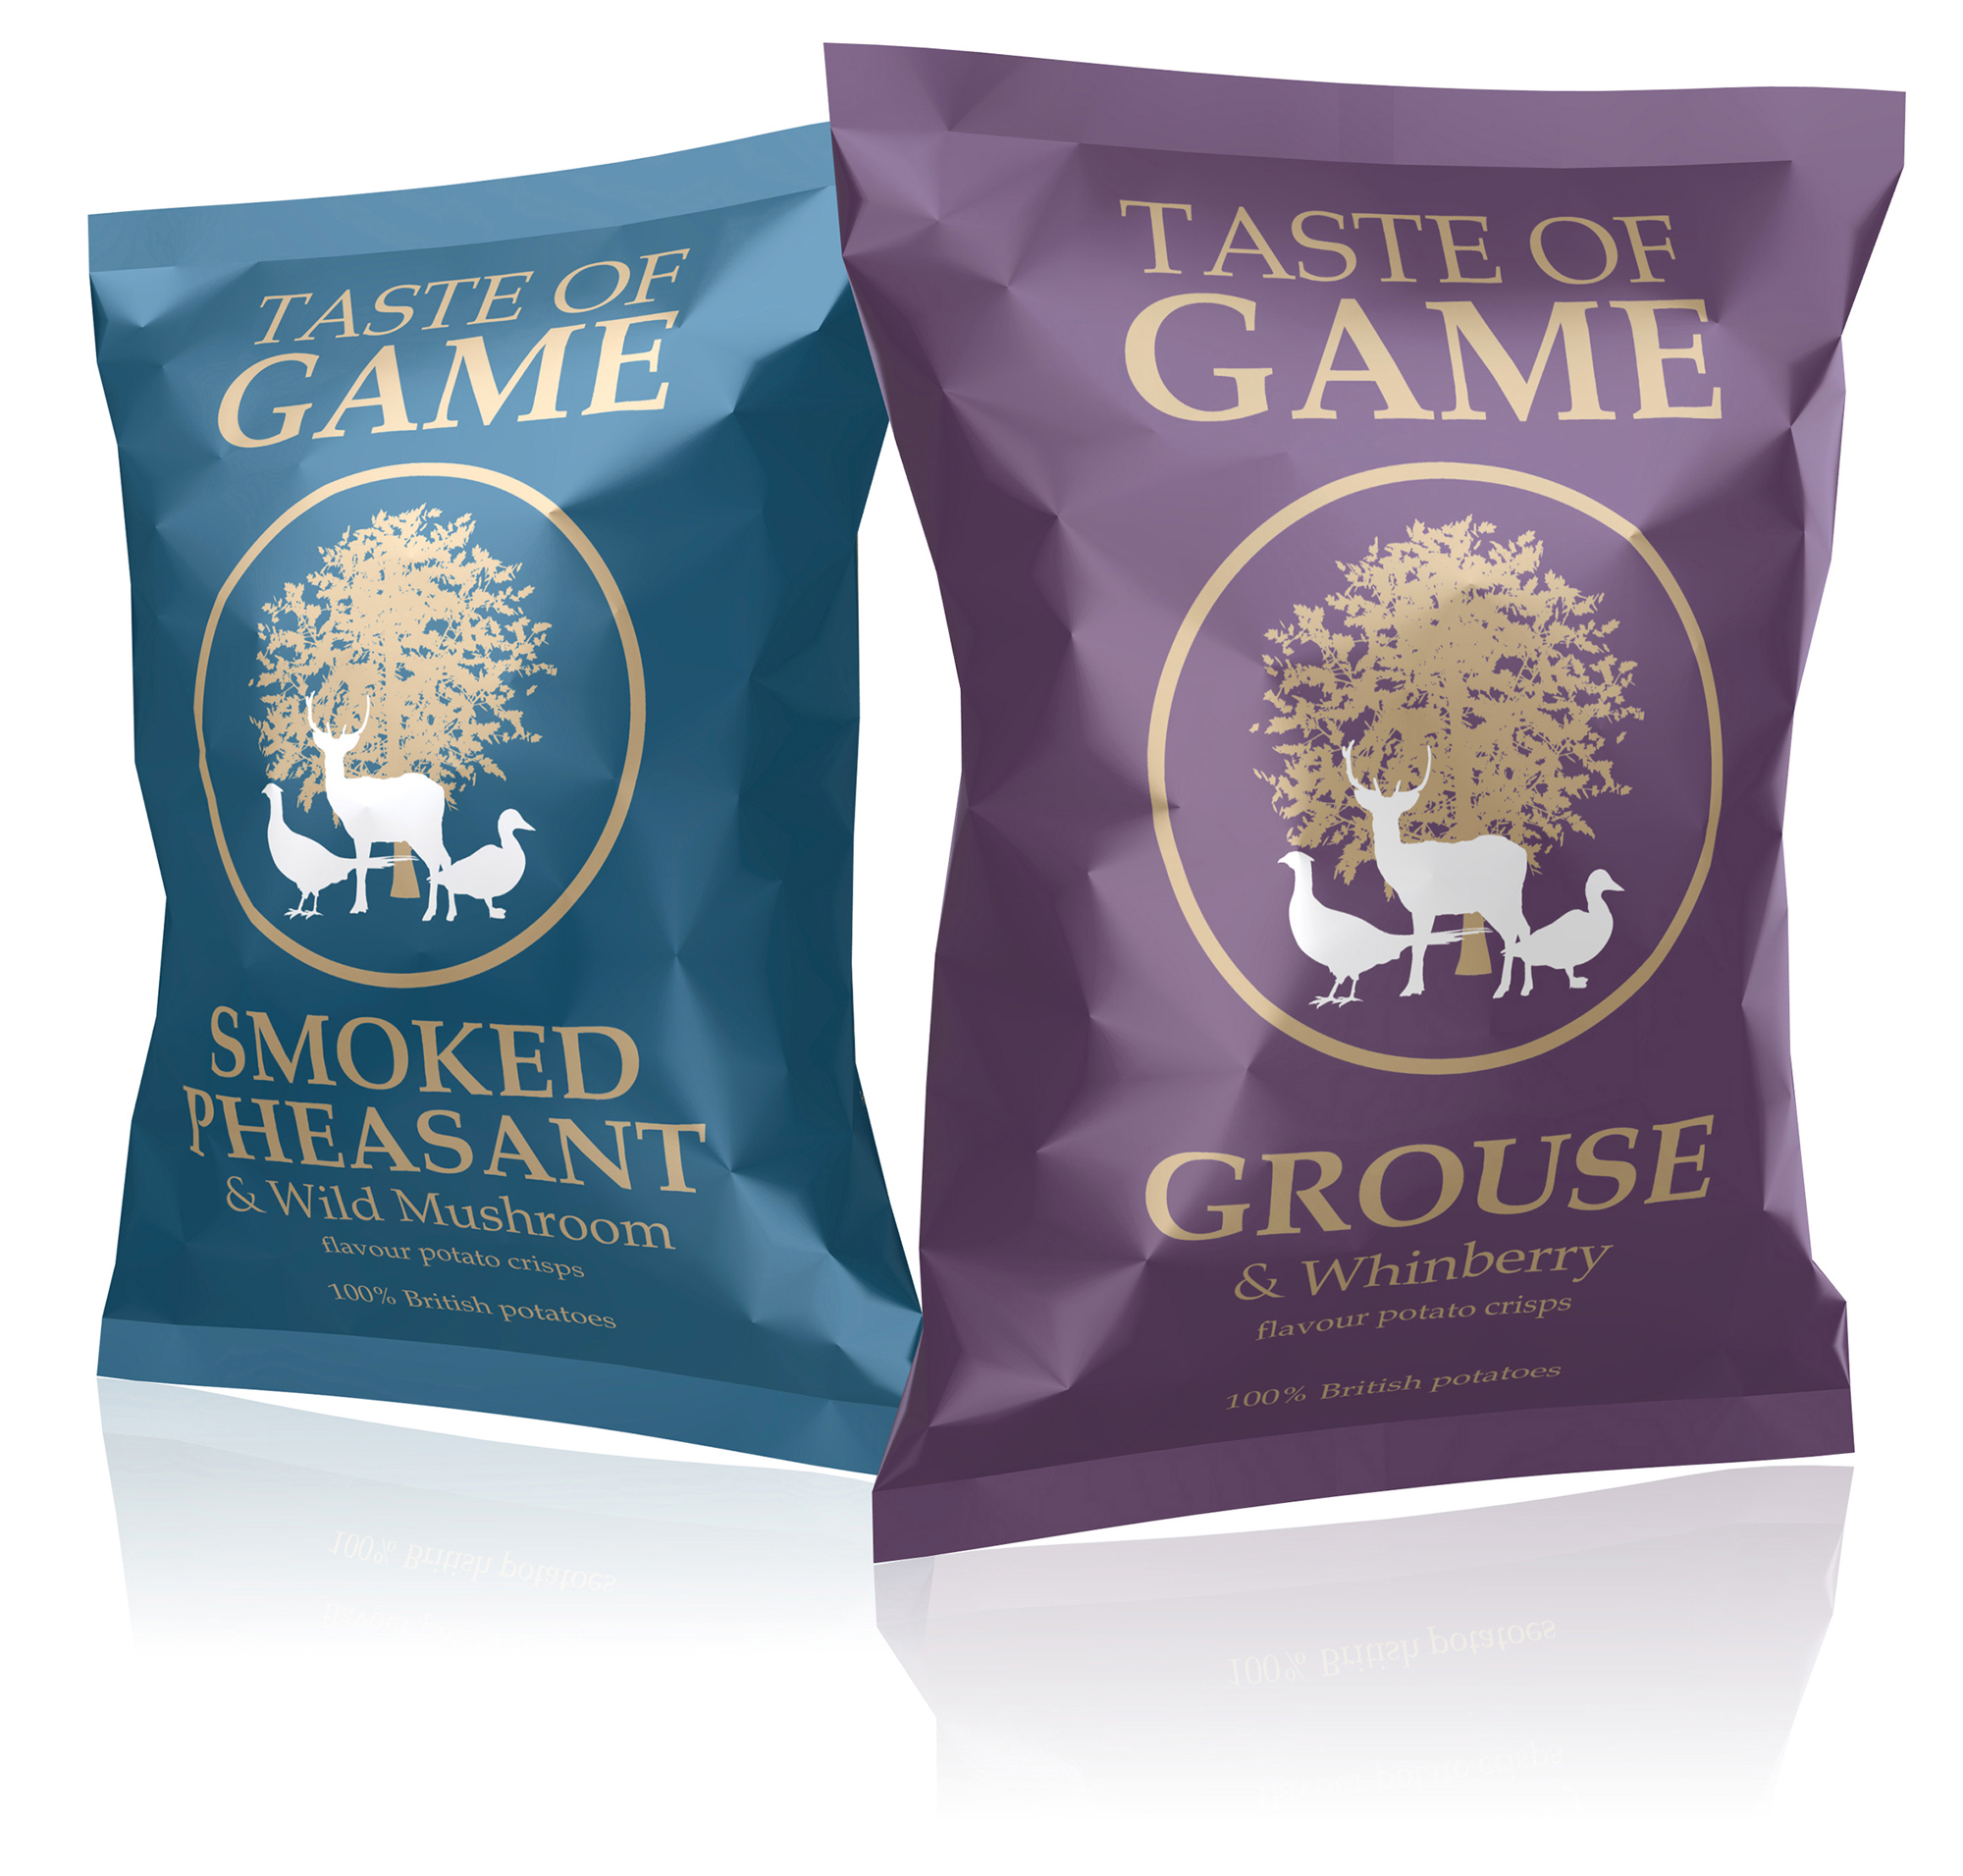 A taste of the countryside – grouse & whinberry and smoked pheasant & wild mushroom crisps